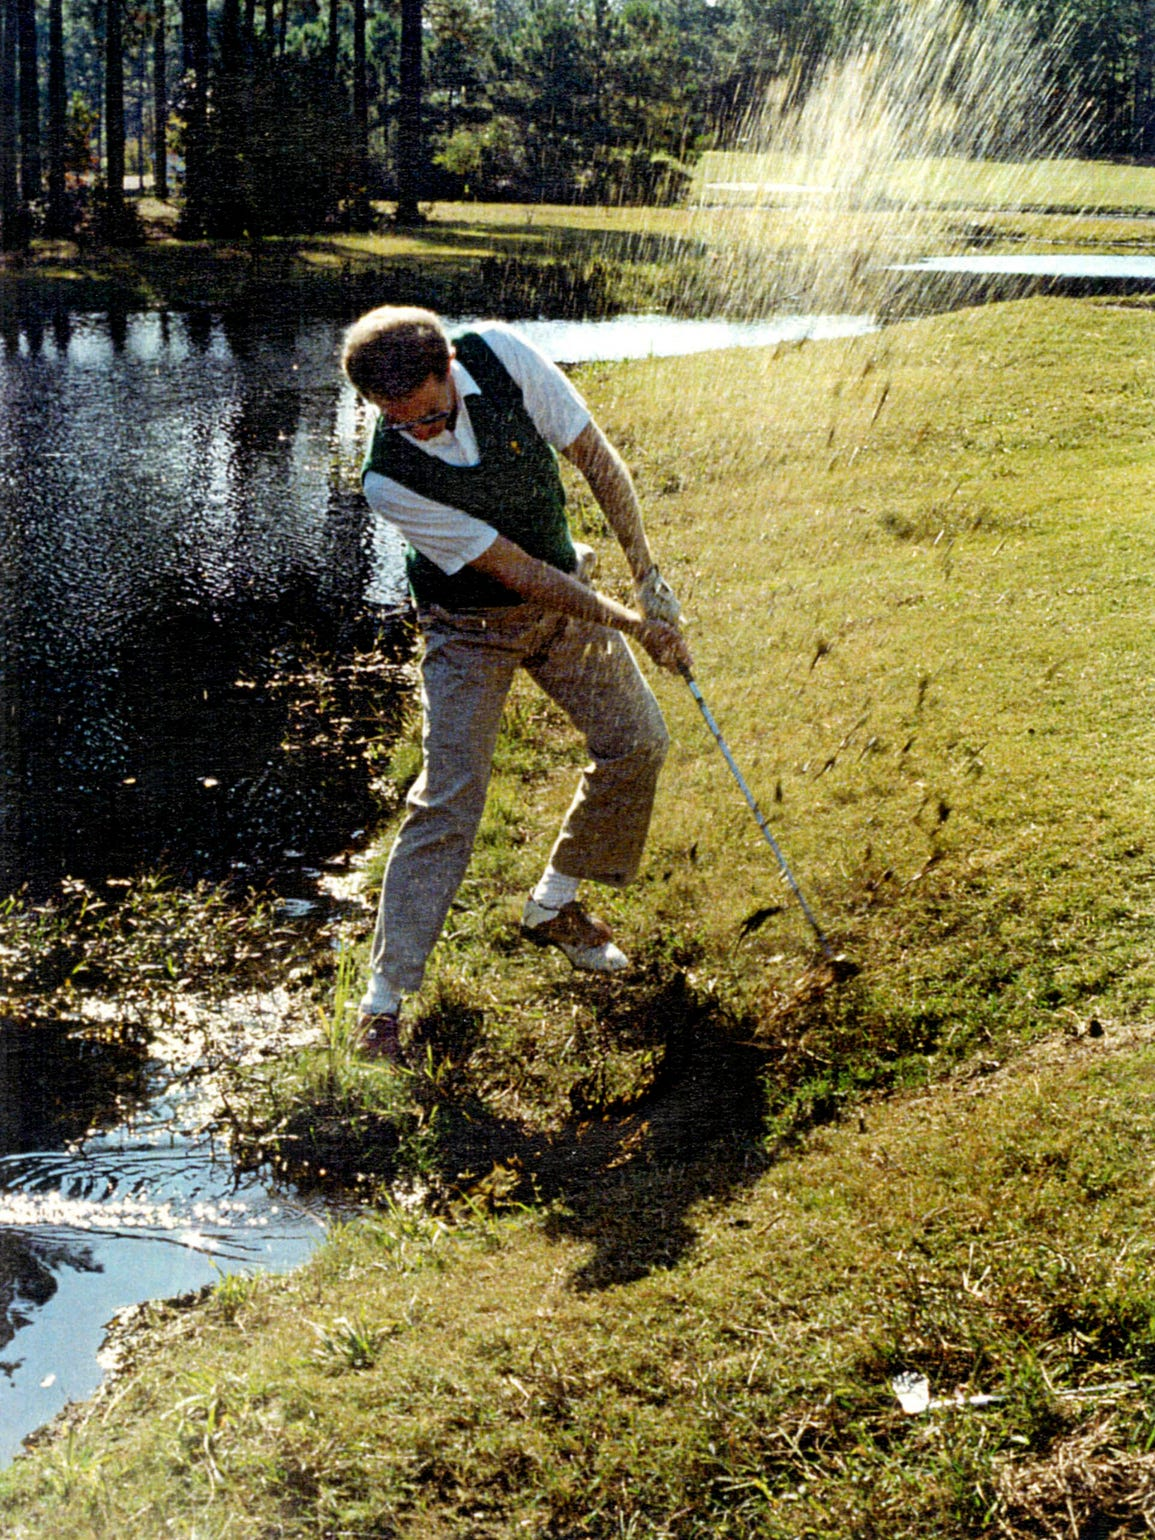 Steve Trattner was hooked on golf but not good enough